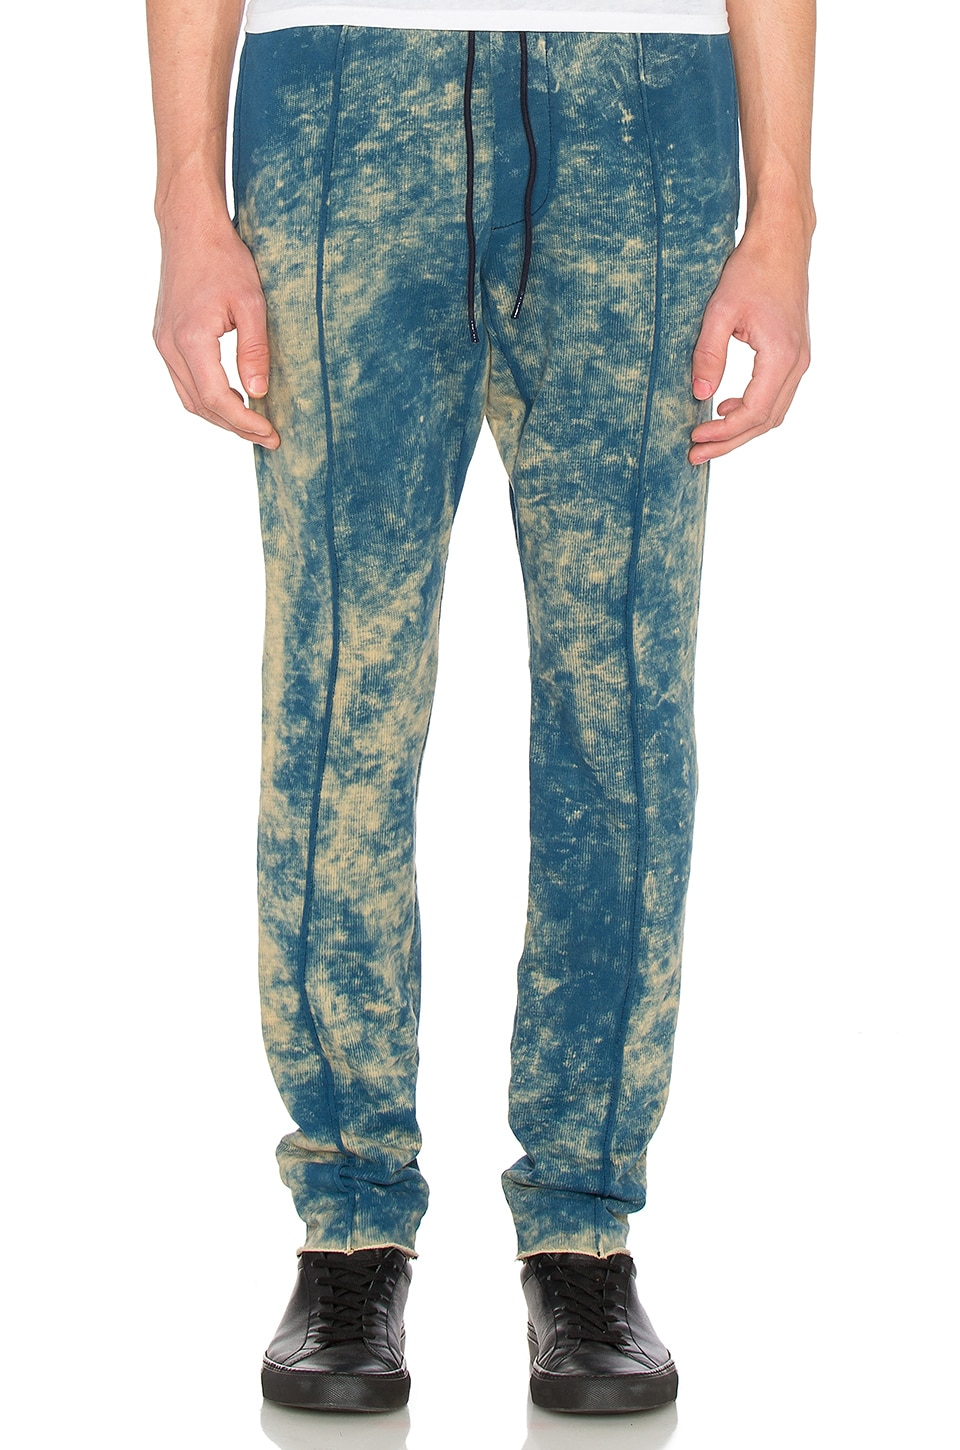 The Cobain Pant by COTTON CITIZEN